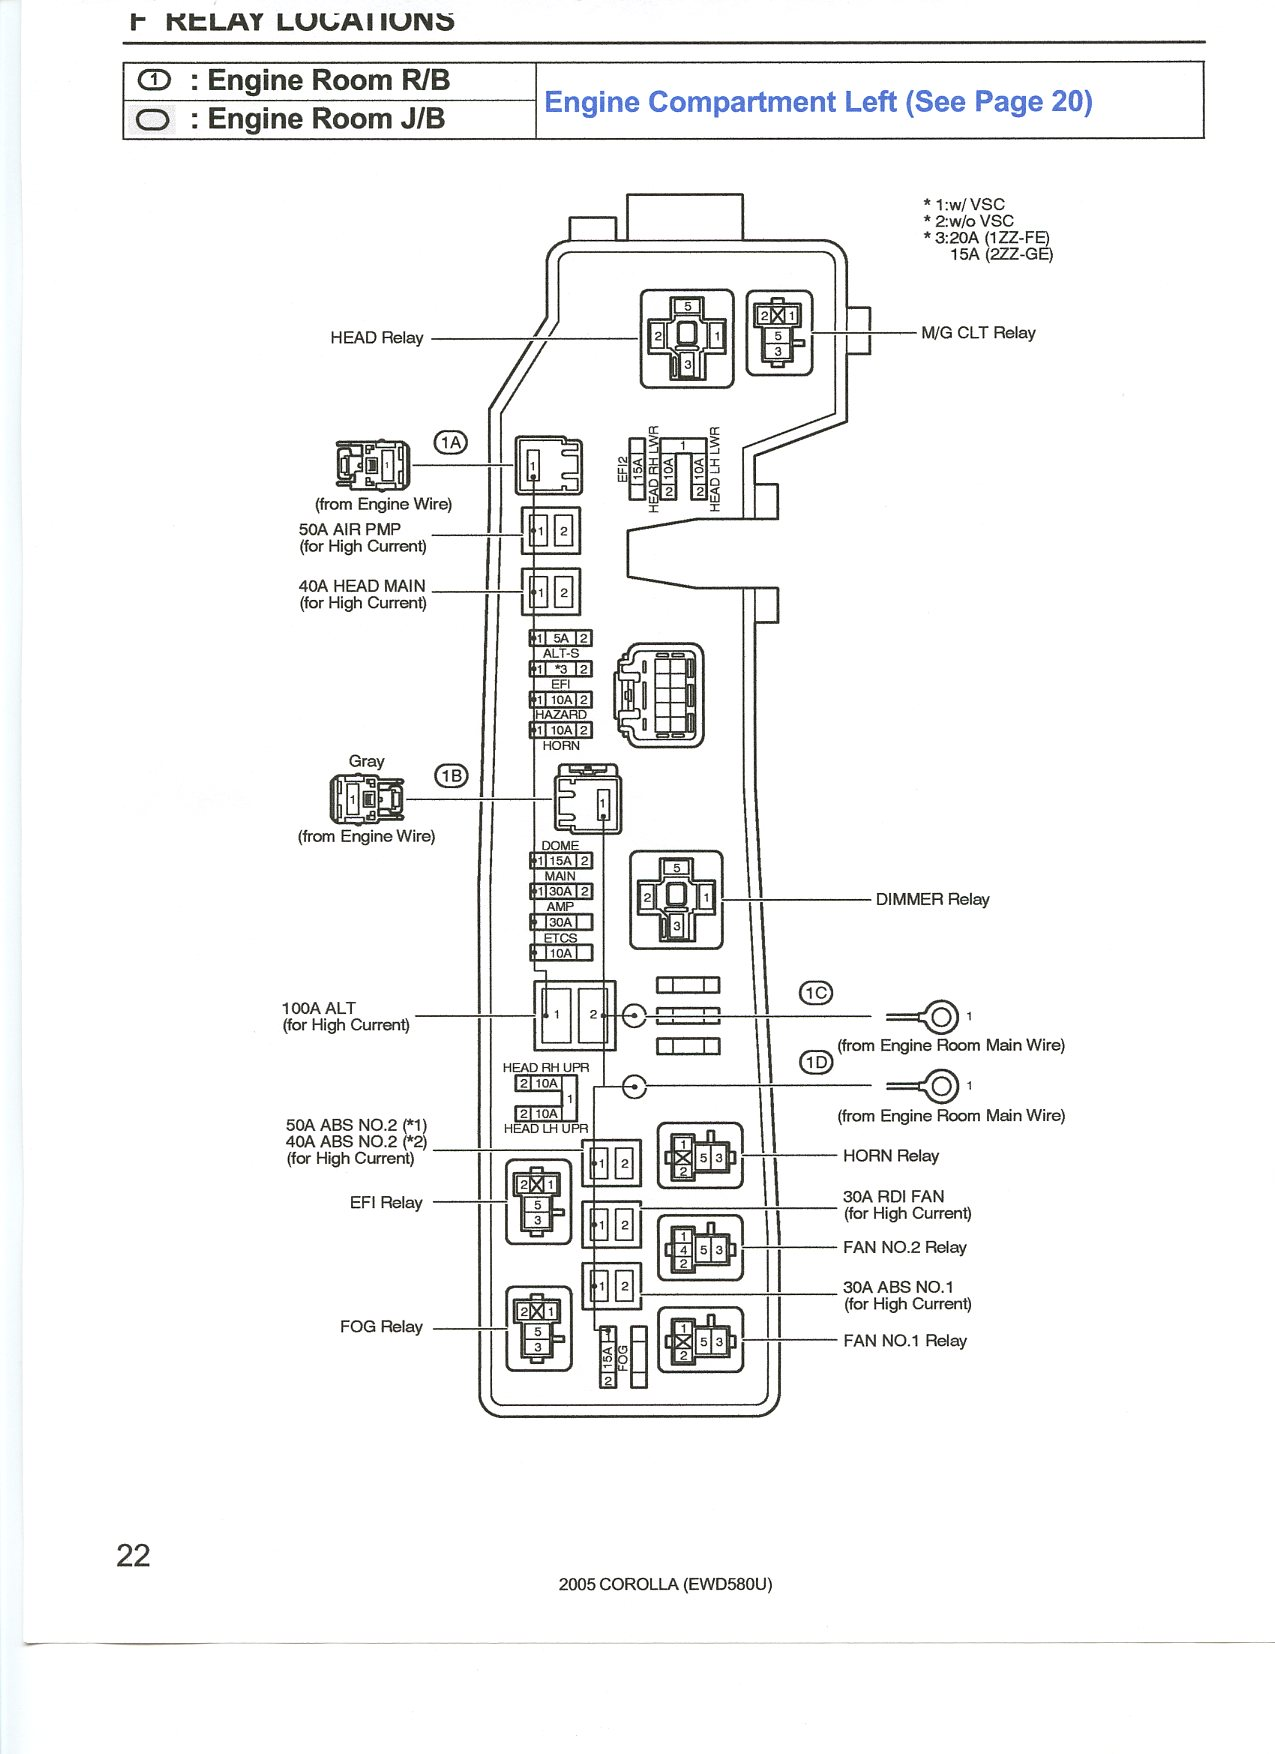 2006 Toyota Corolla S Fuse Box Diagram Wiring Diagram Dedicated Dedicated Pasticceriagele It